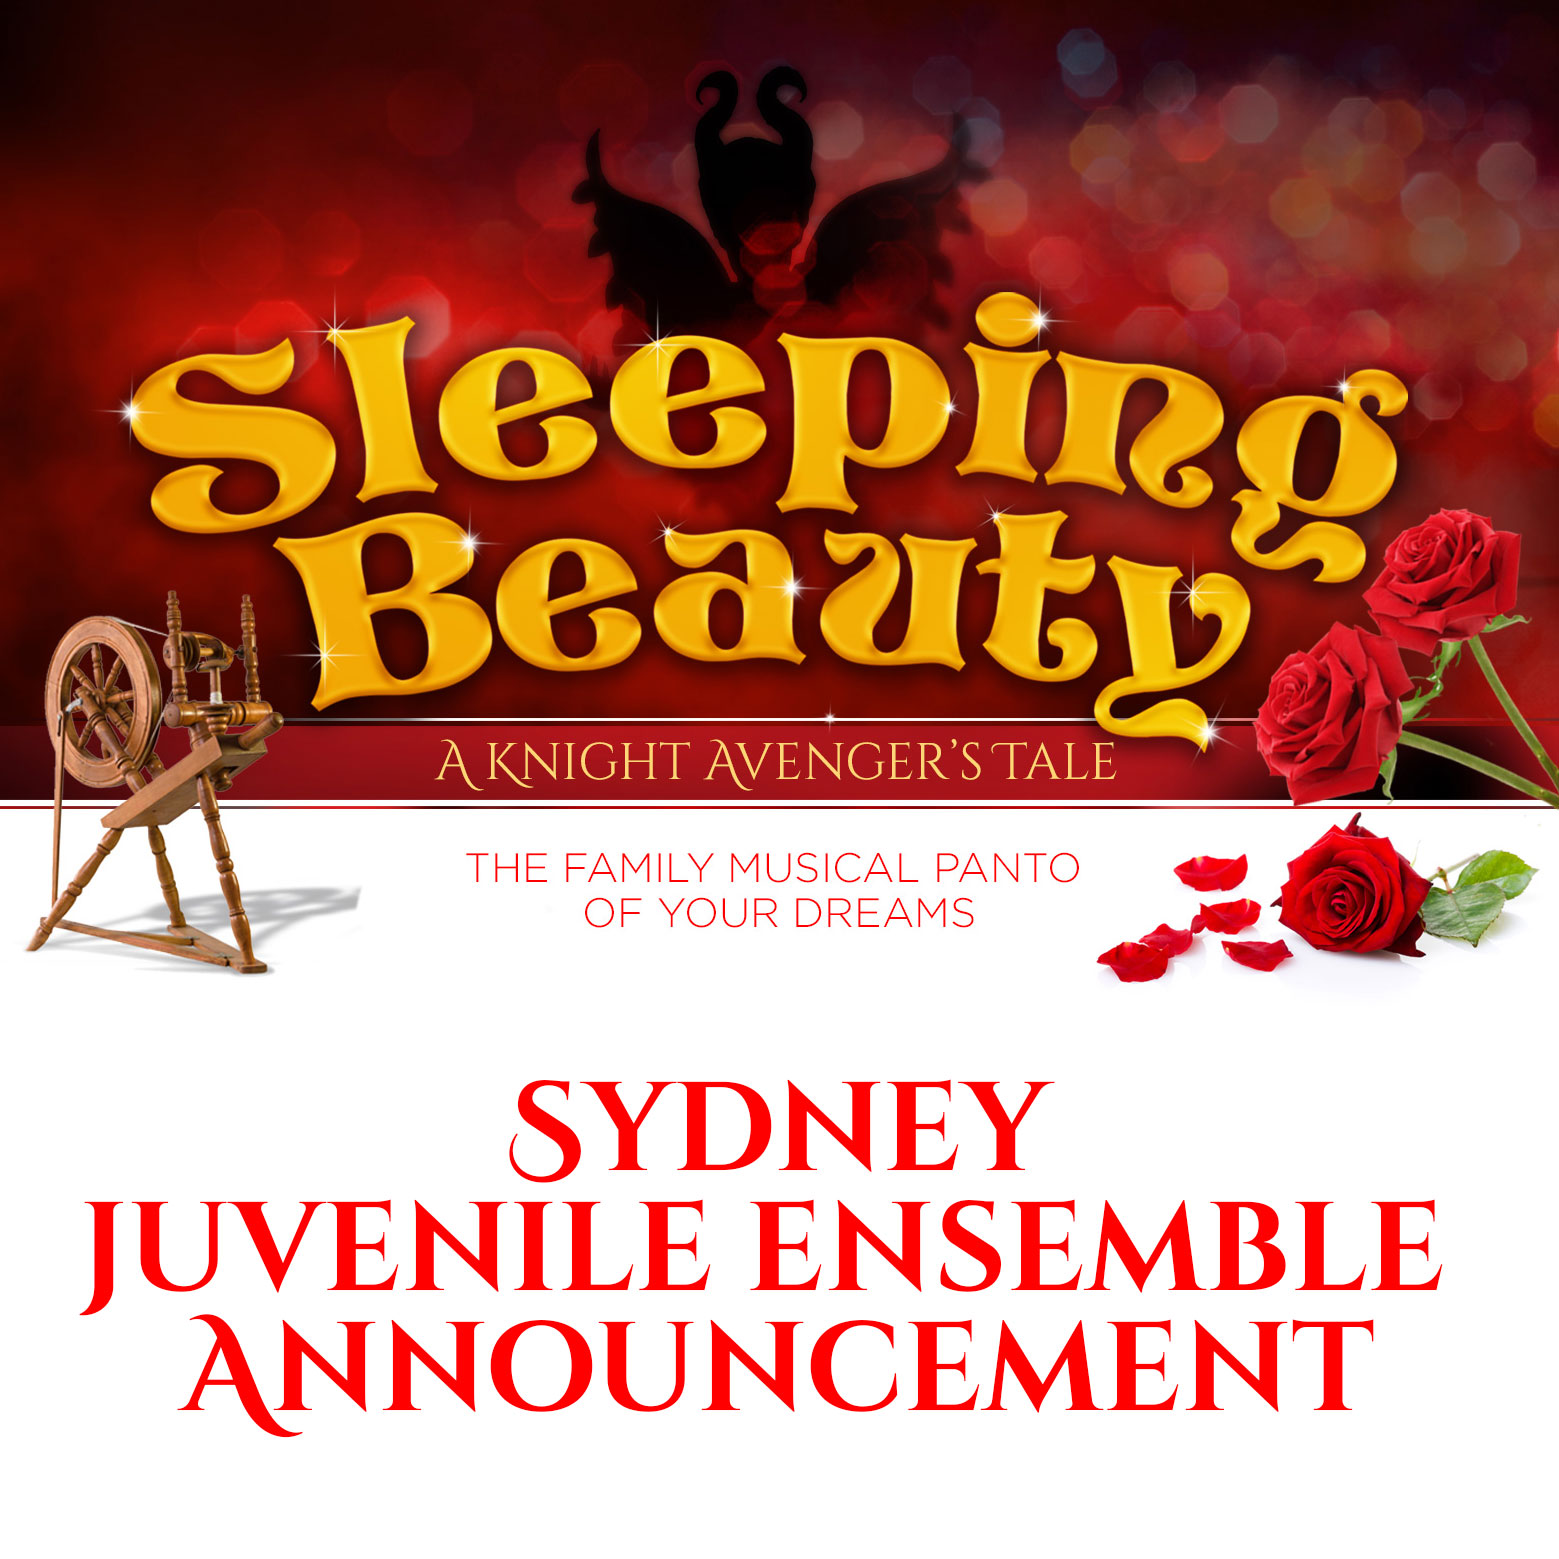 Sydney juvenile ensemble Announcement